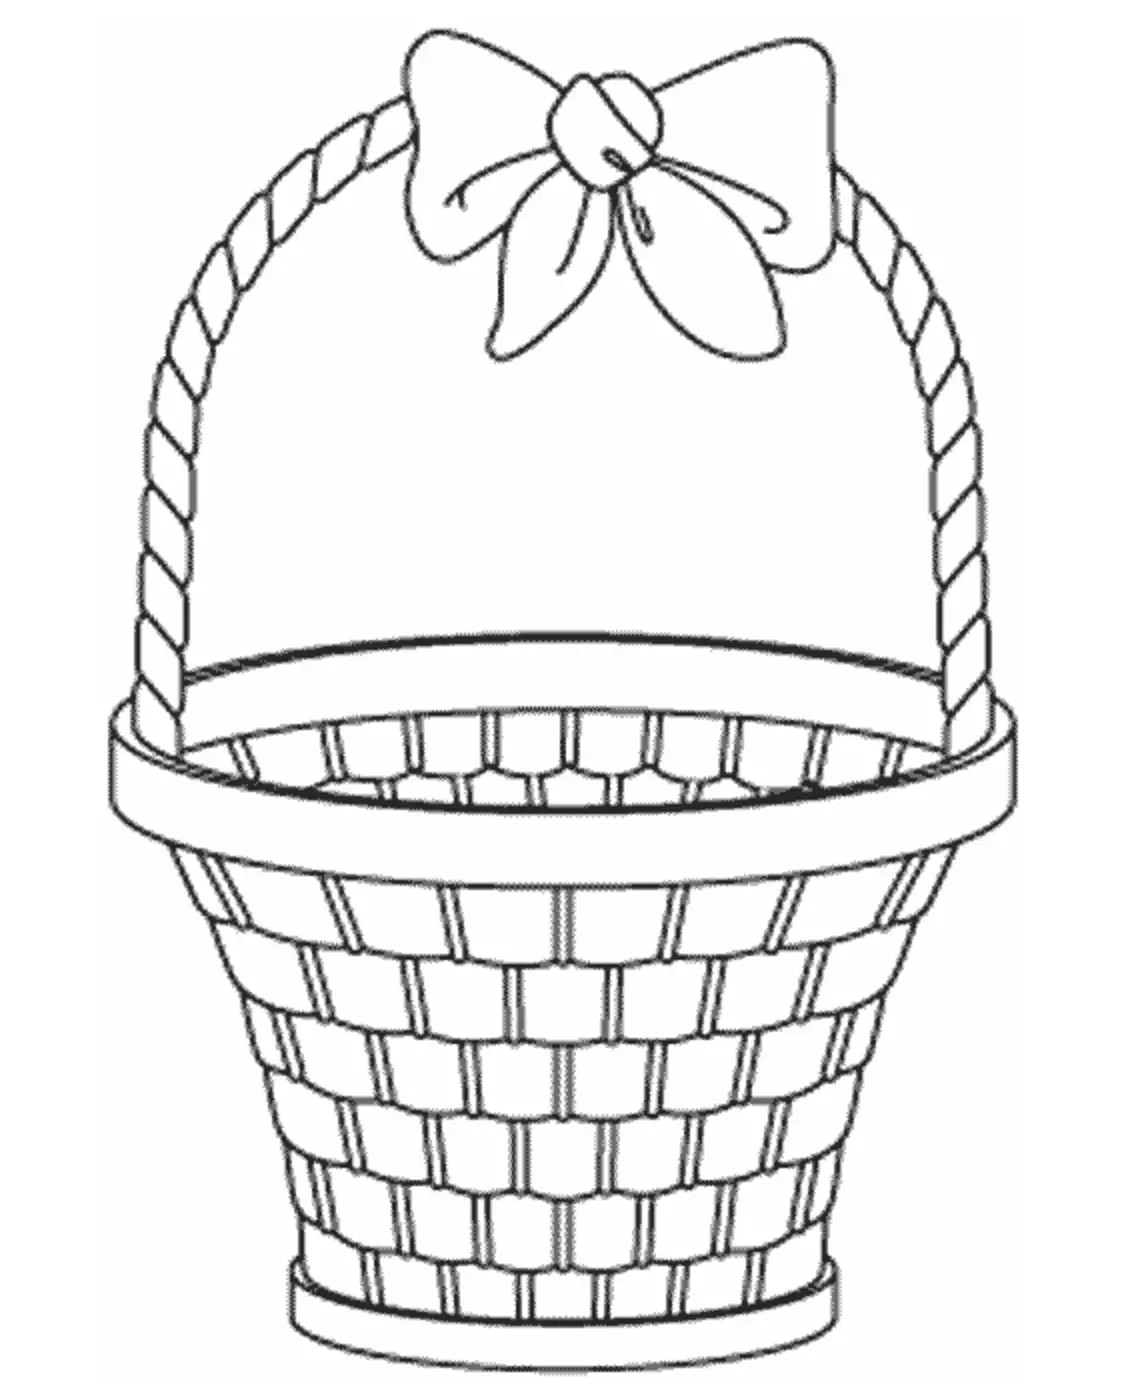 Empty Easter Basket Coloring Page Amp Book For Kids